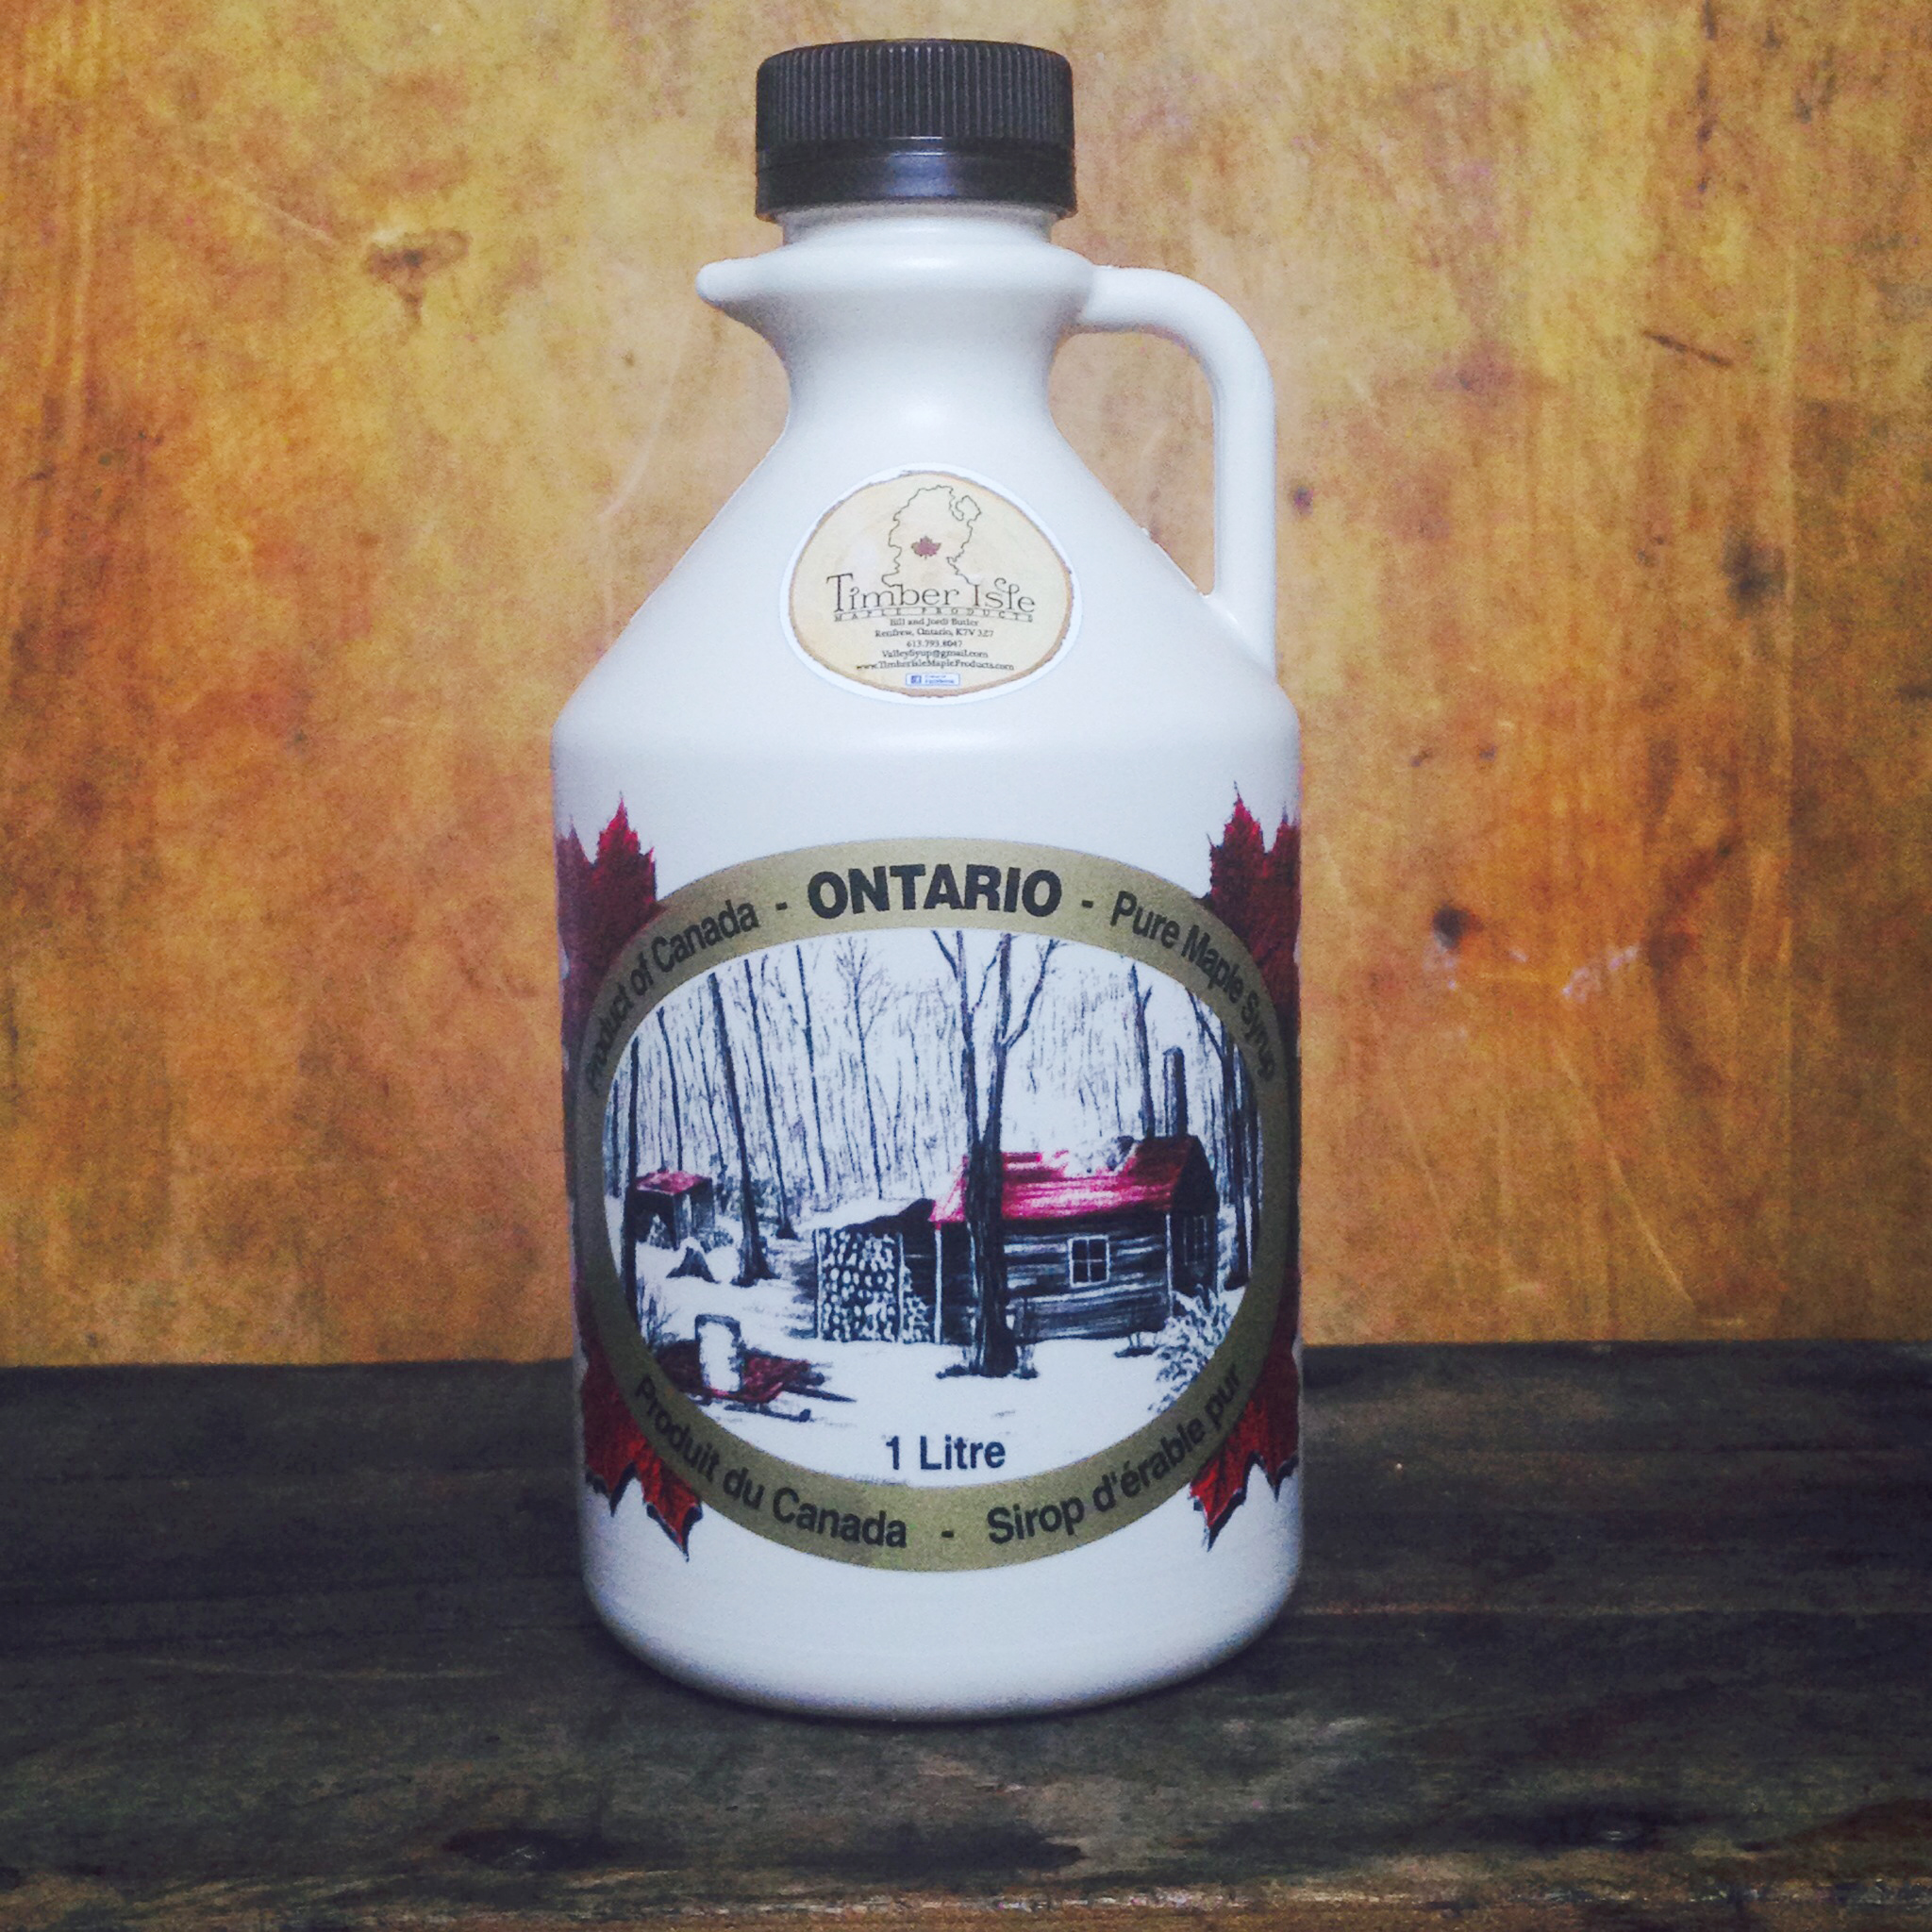 Traditional Pure Ontario Maple Syrup 1 Litre Timber Isle